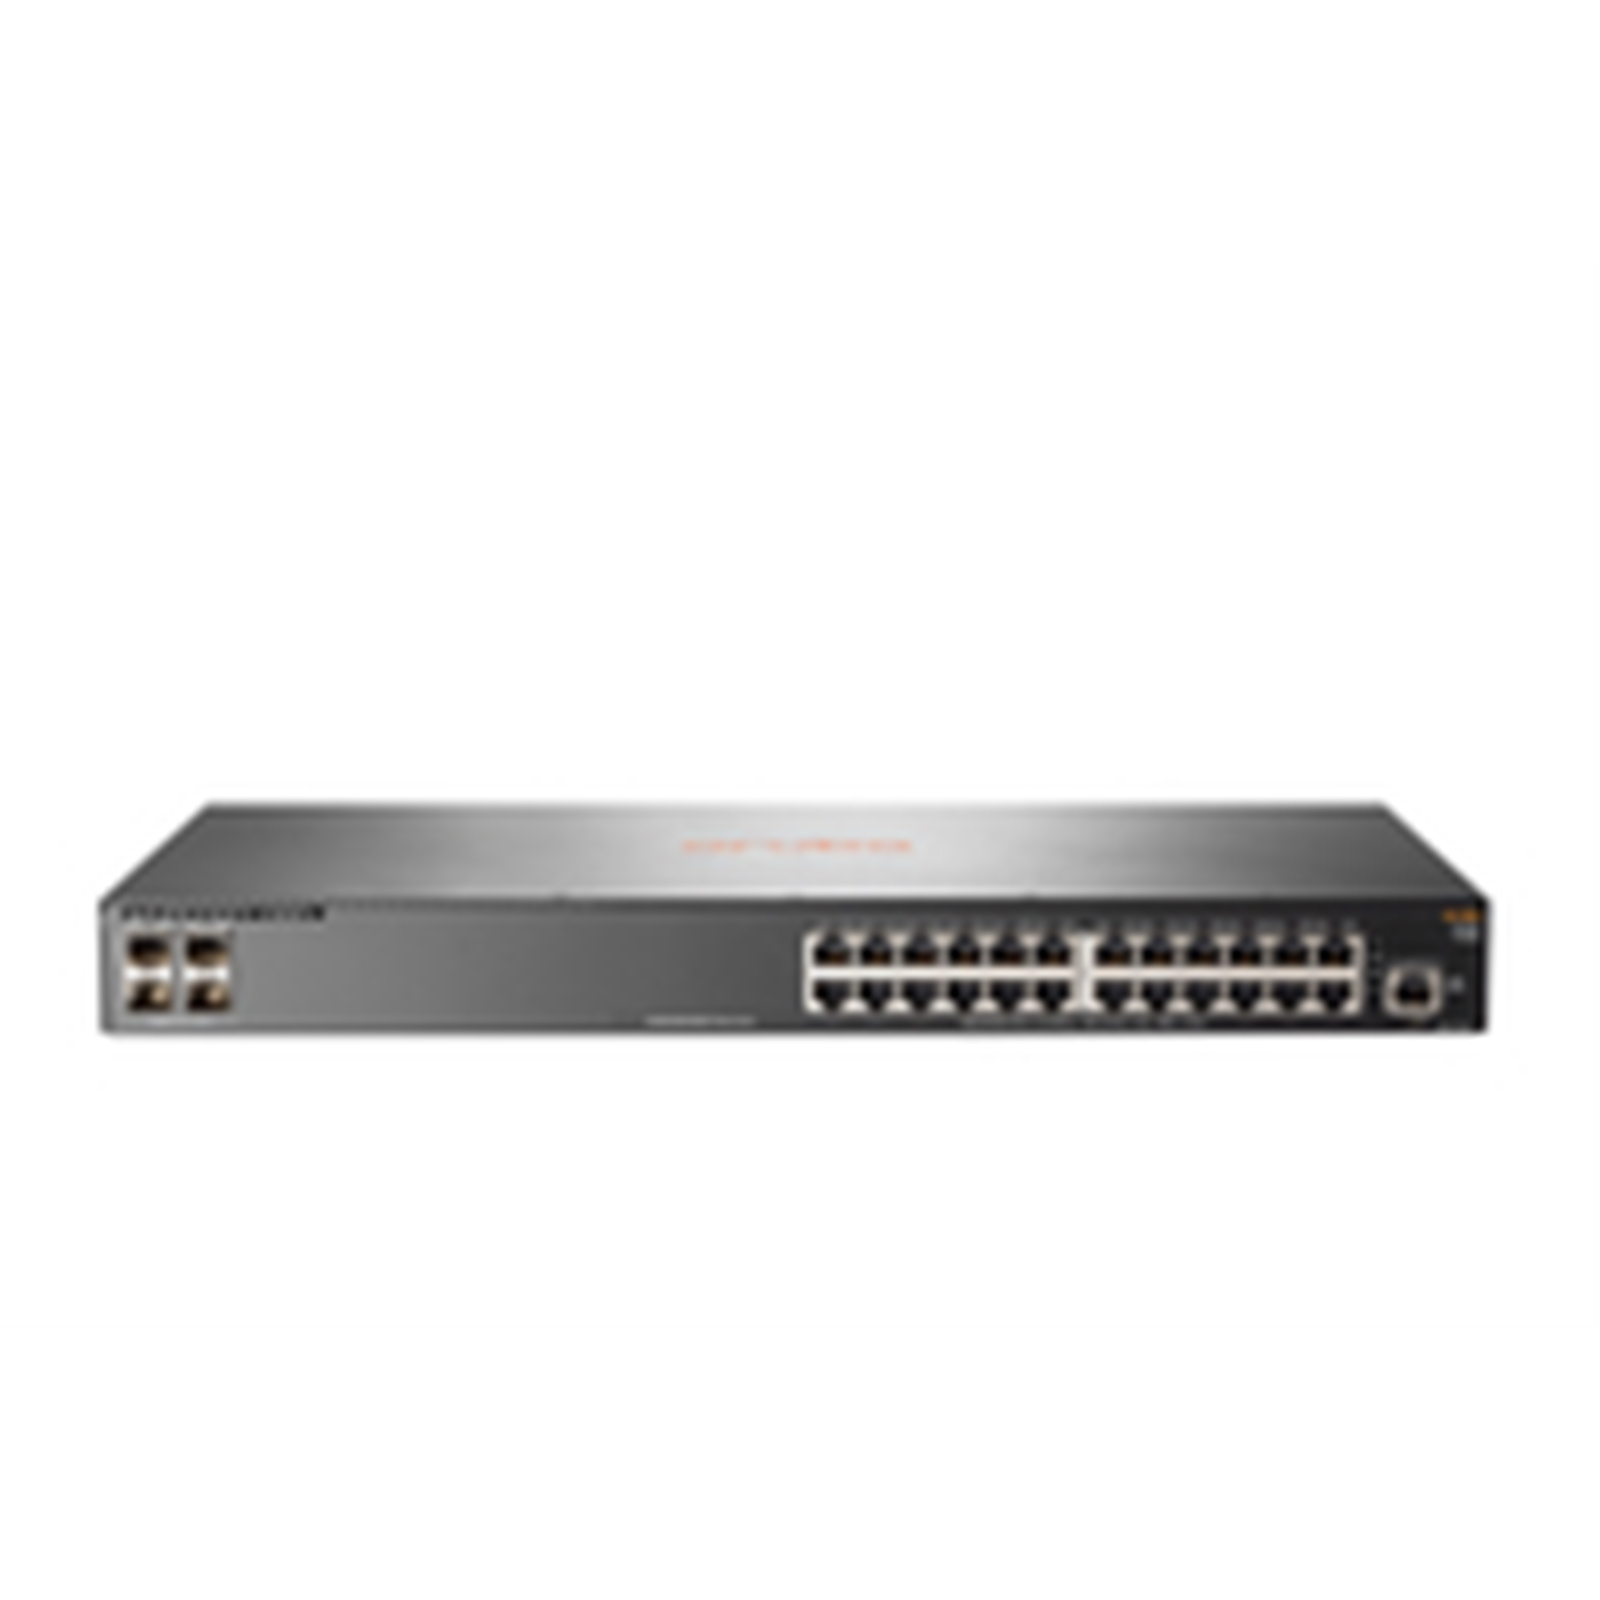 Aruba Managed Switches Jl253a Servers Plus